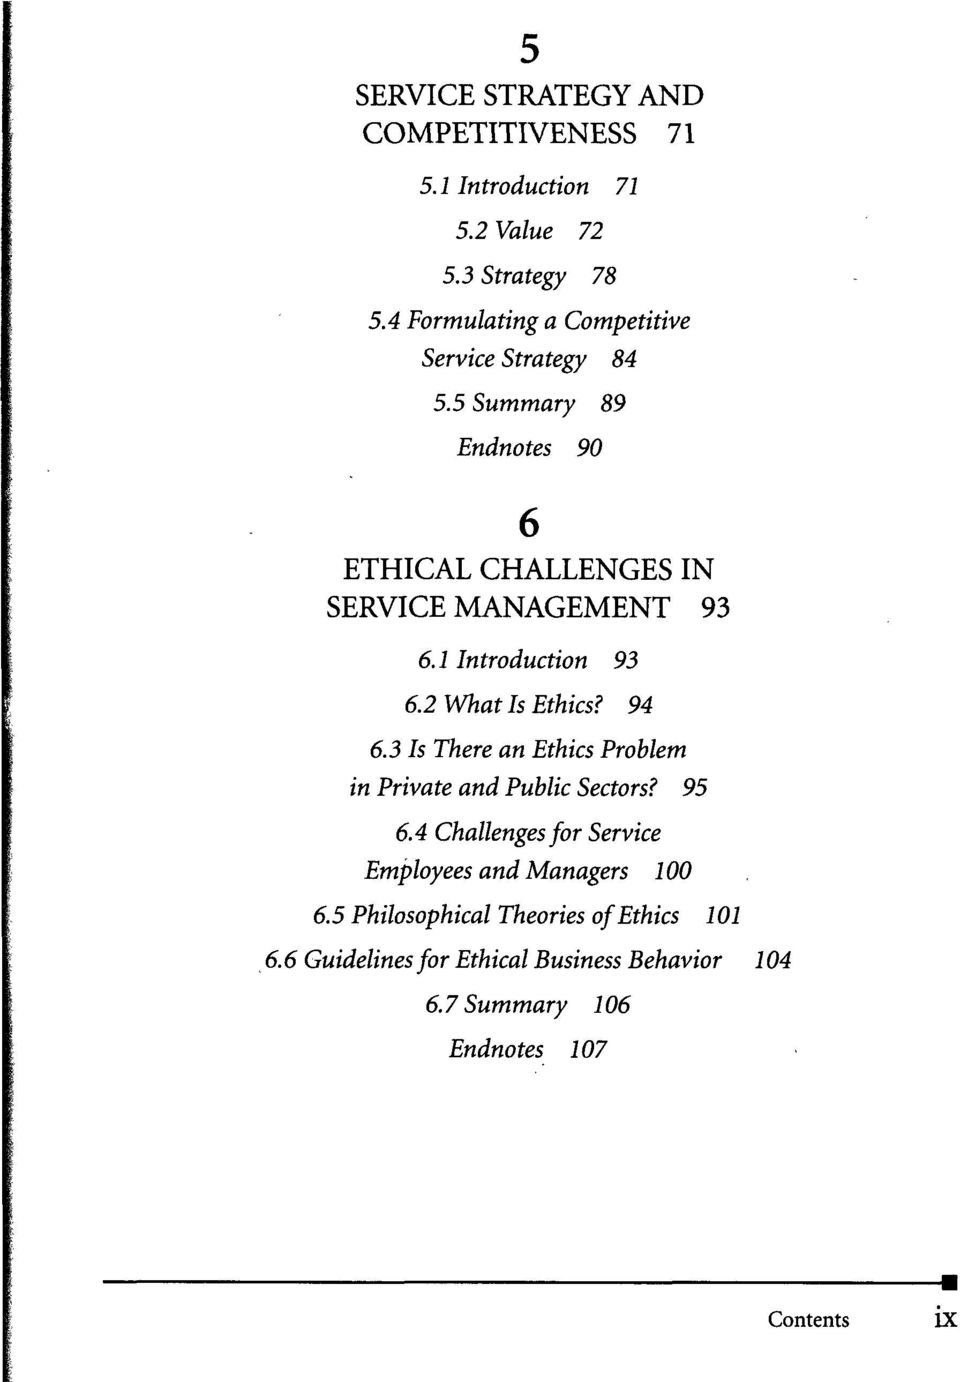 1 Introduction 93 6.2 What Is Ethics? 94 6.3 Is There an Ethics Problem in Private and Public Sectors? 95 6.